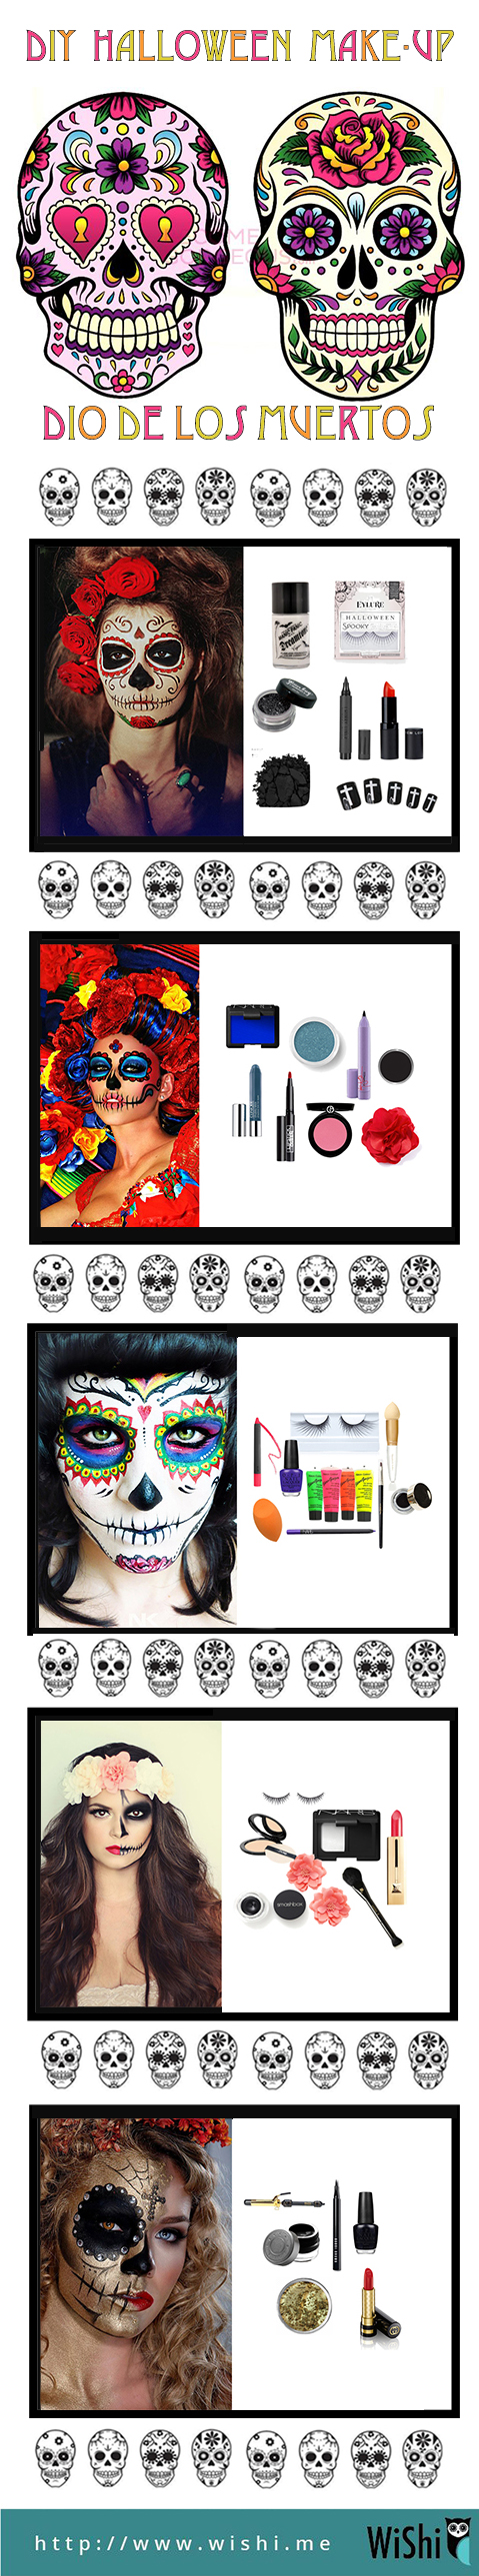 Fun makeup guide for what you'll need to do Dia de los